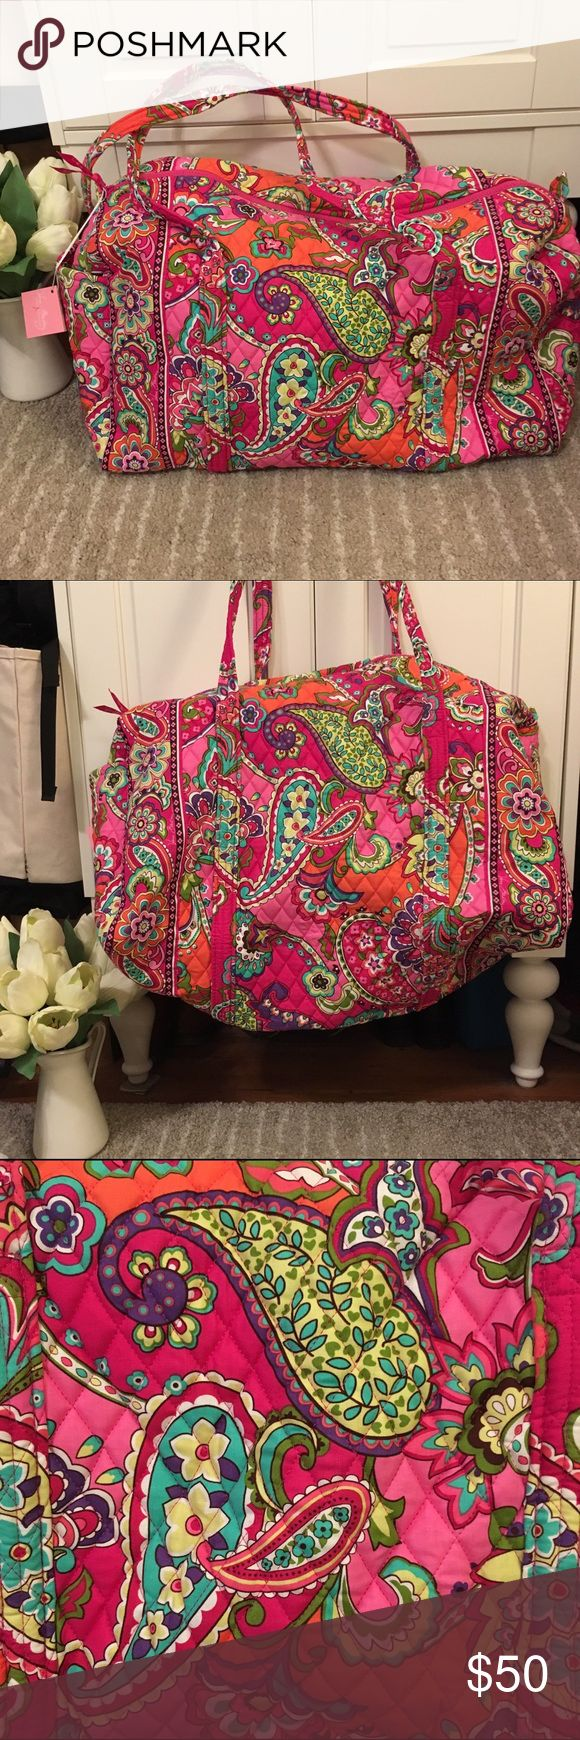 🎀NWT Vera Bradley Large Duffel Pink Swirls🎀 New with tags, Vera Bradley Large Duffel Pink Swirls. Retired pattern, hard to find! This duffel is the perfect size for a weekend getaway! Vera Bradley Bags Travel Bags